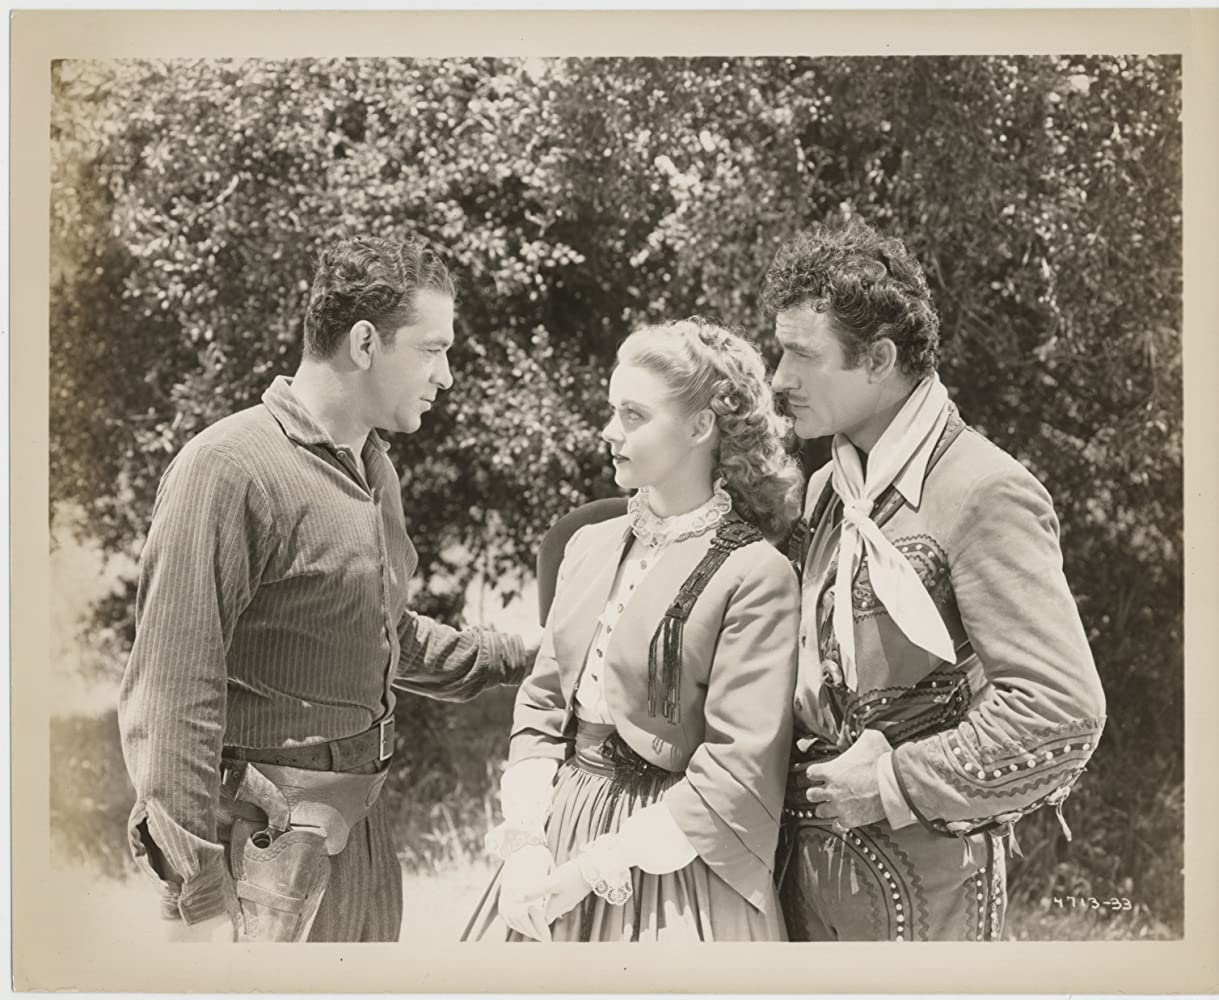 Angela Greene, Gilbert Roland, and Anthony Warde in King of the Bandits (1947)